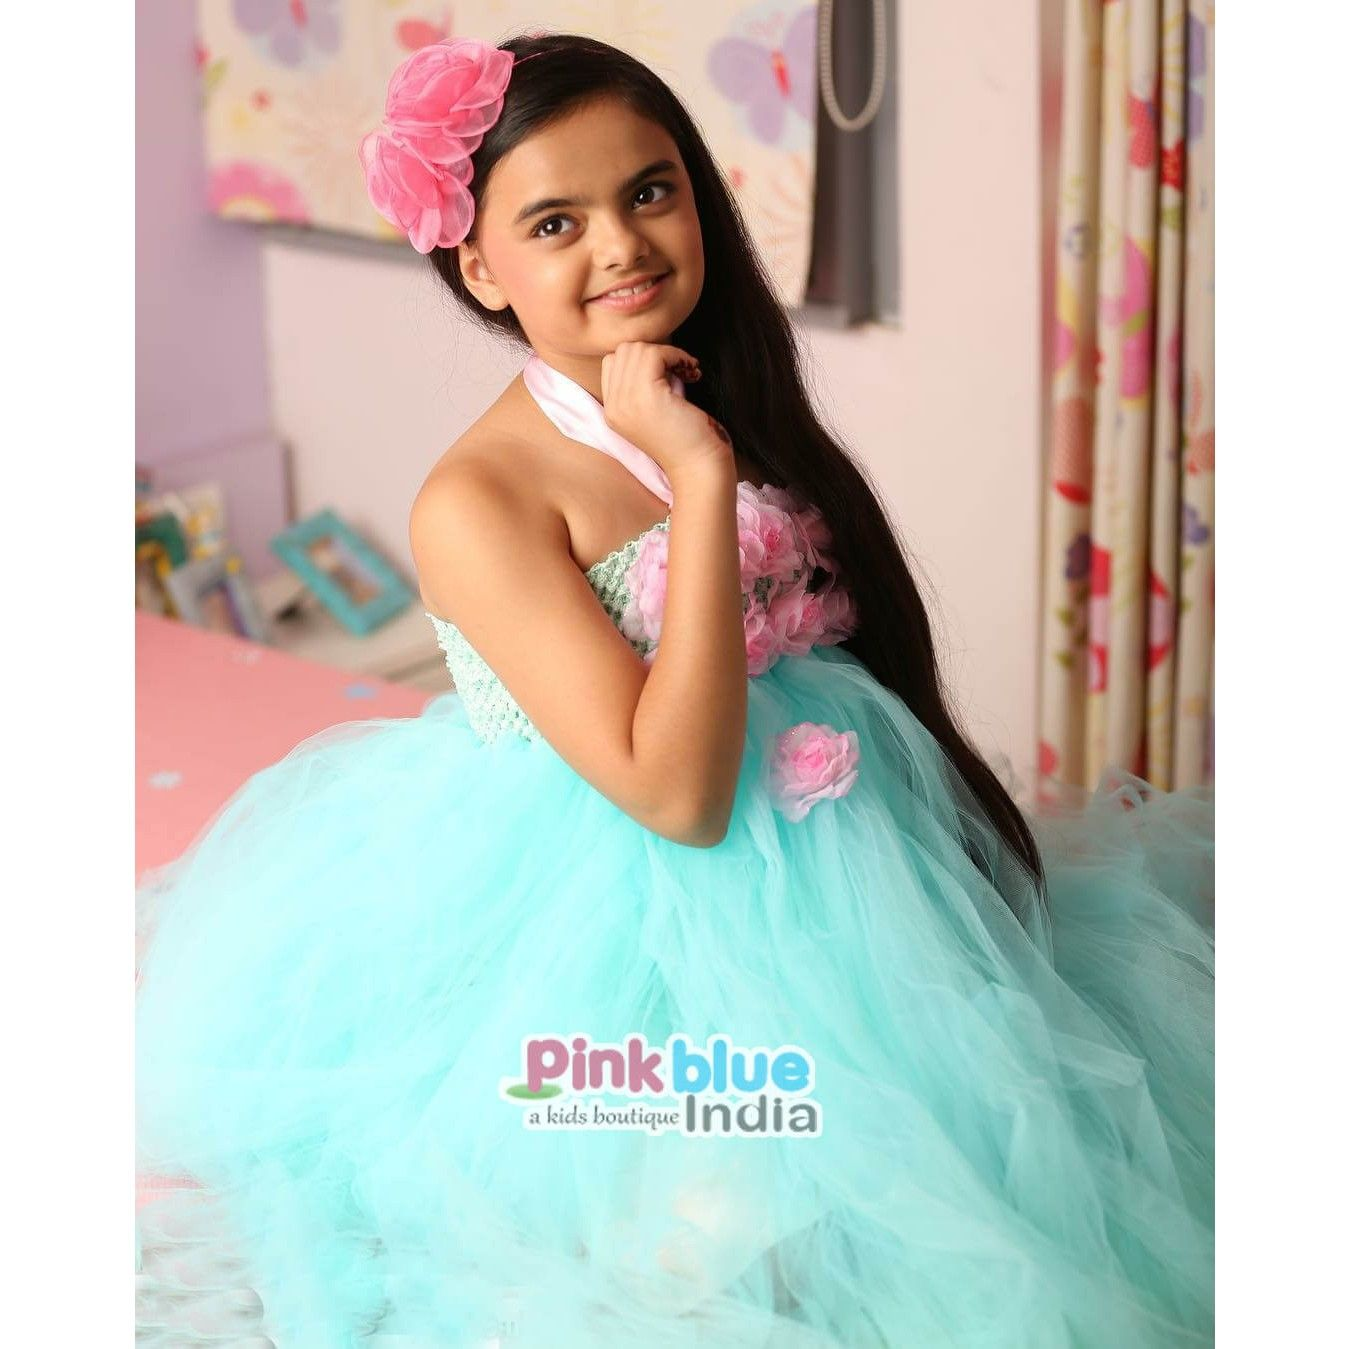 Tutu Birthday Party Dress for Kids in Pink Flowery Bodice and Cyan ...